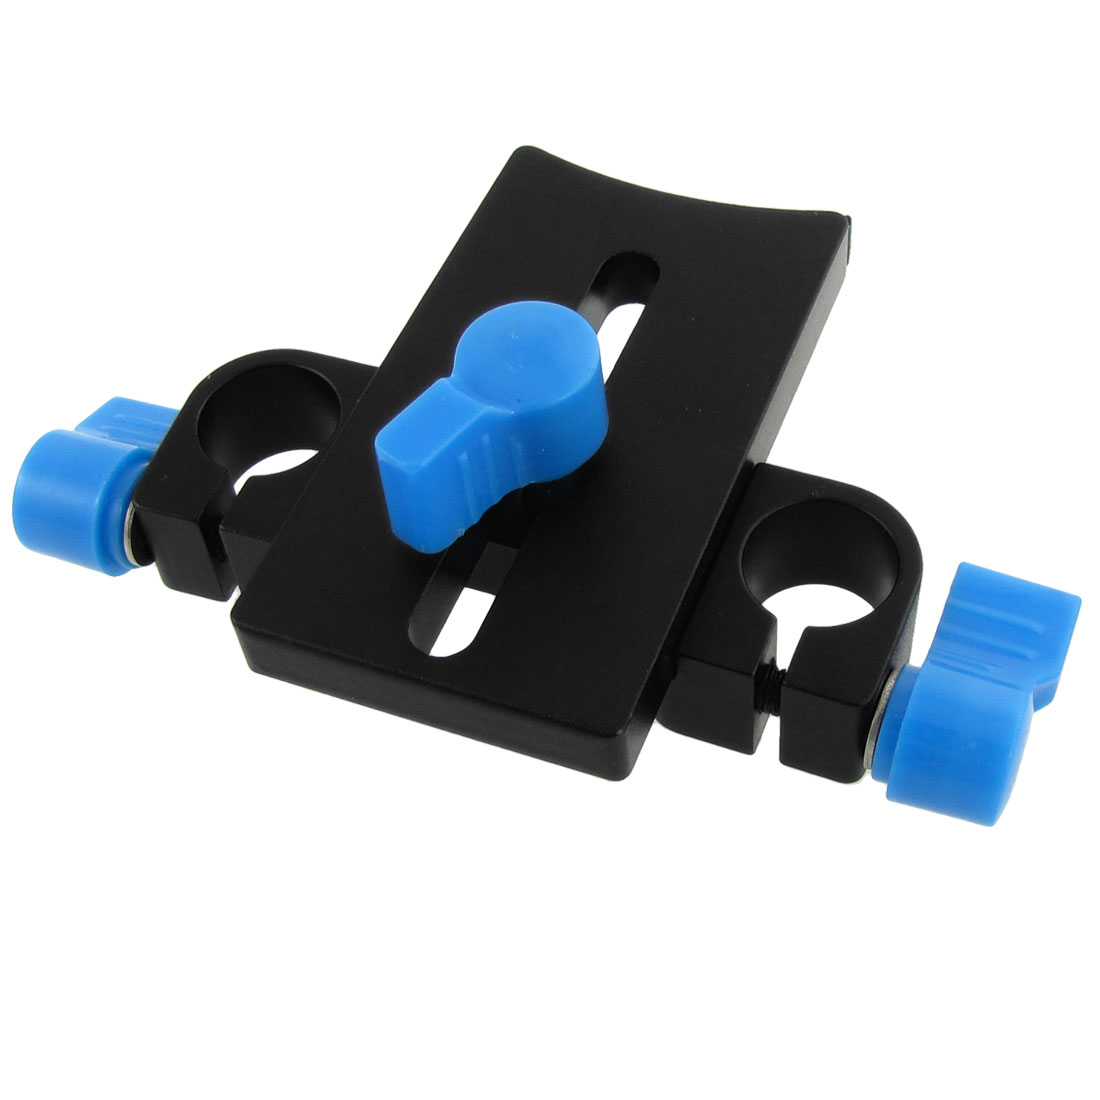 Camera Lens Support Rail Block Rod Clamp Two 15mm Dia Holes DSLR Rig Rail System